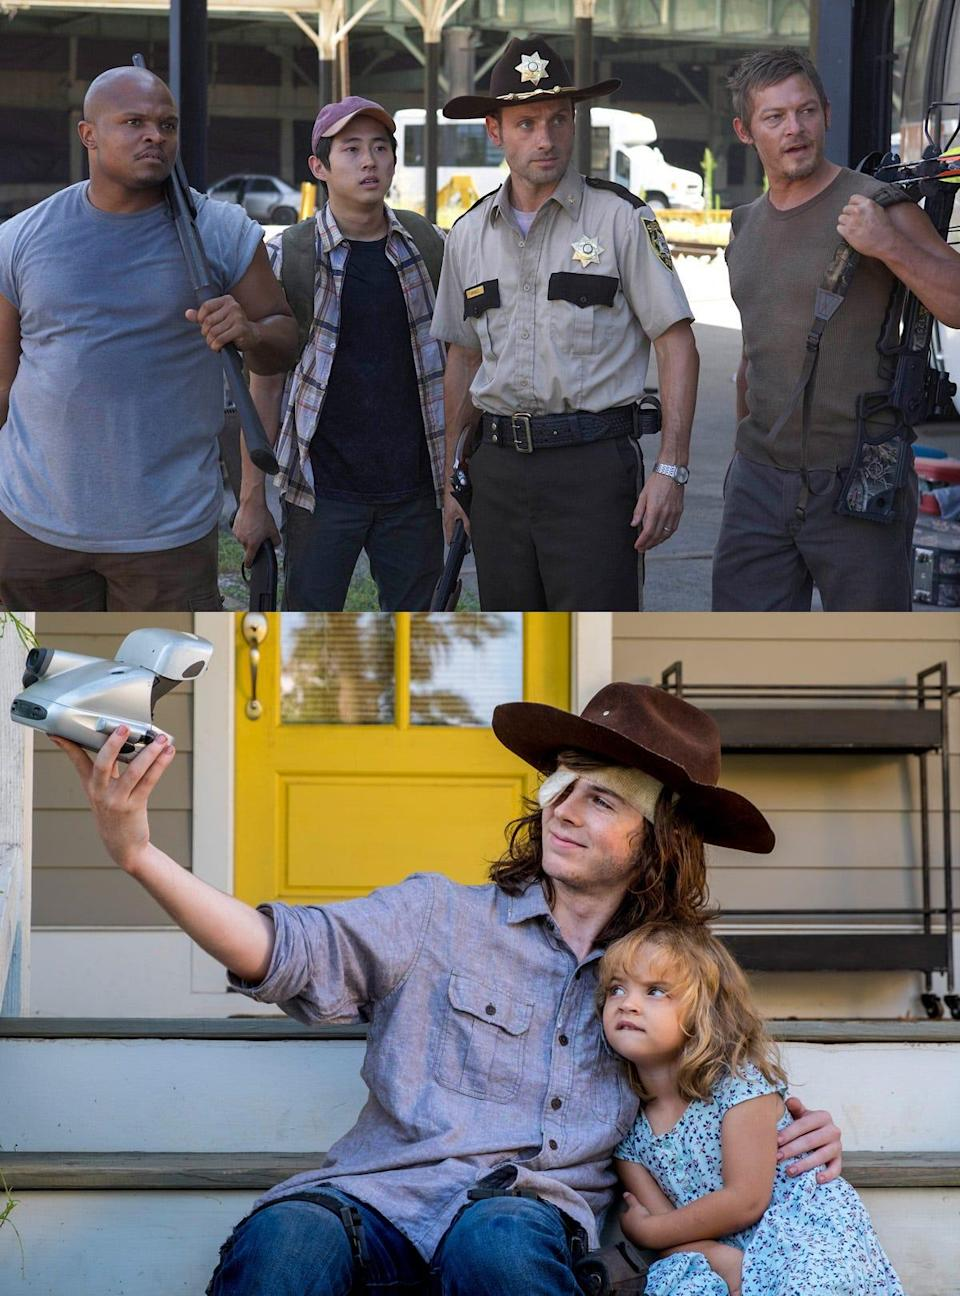 TWD Rick and Carl wearing hat